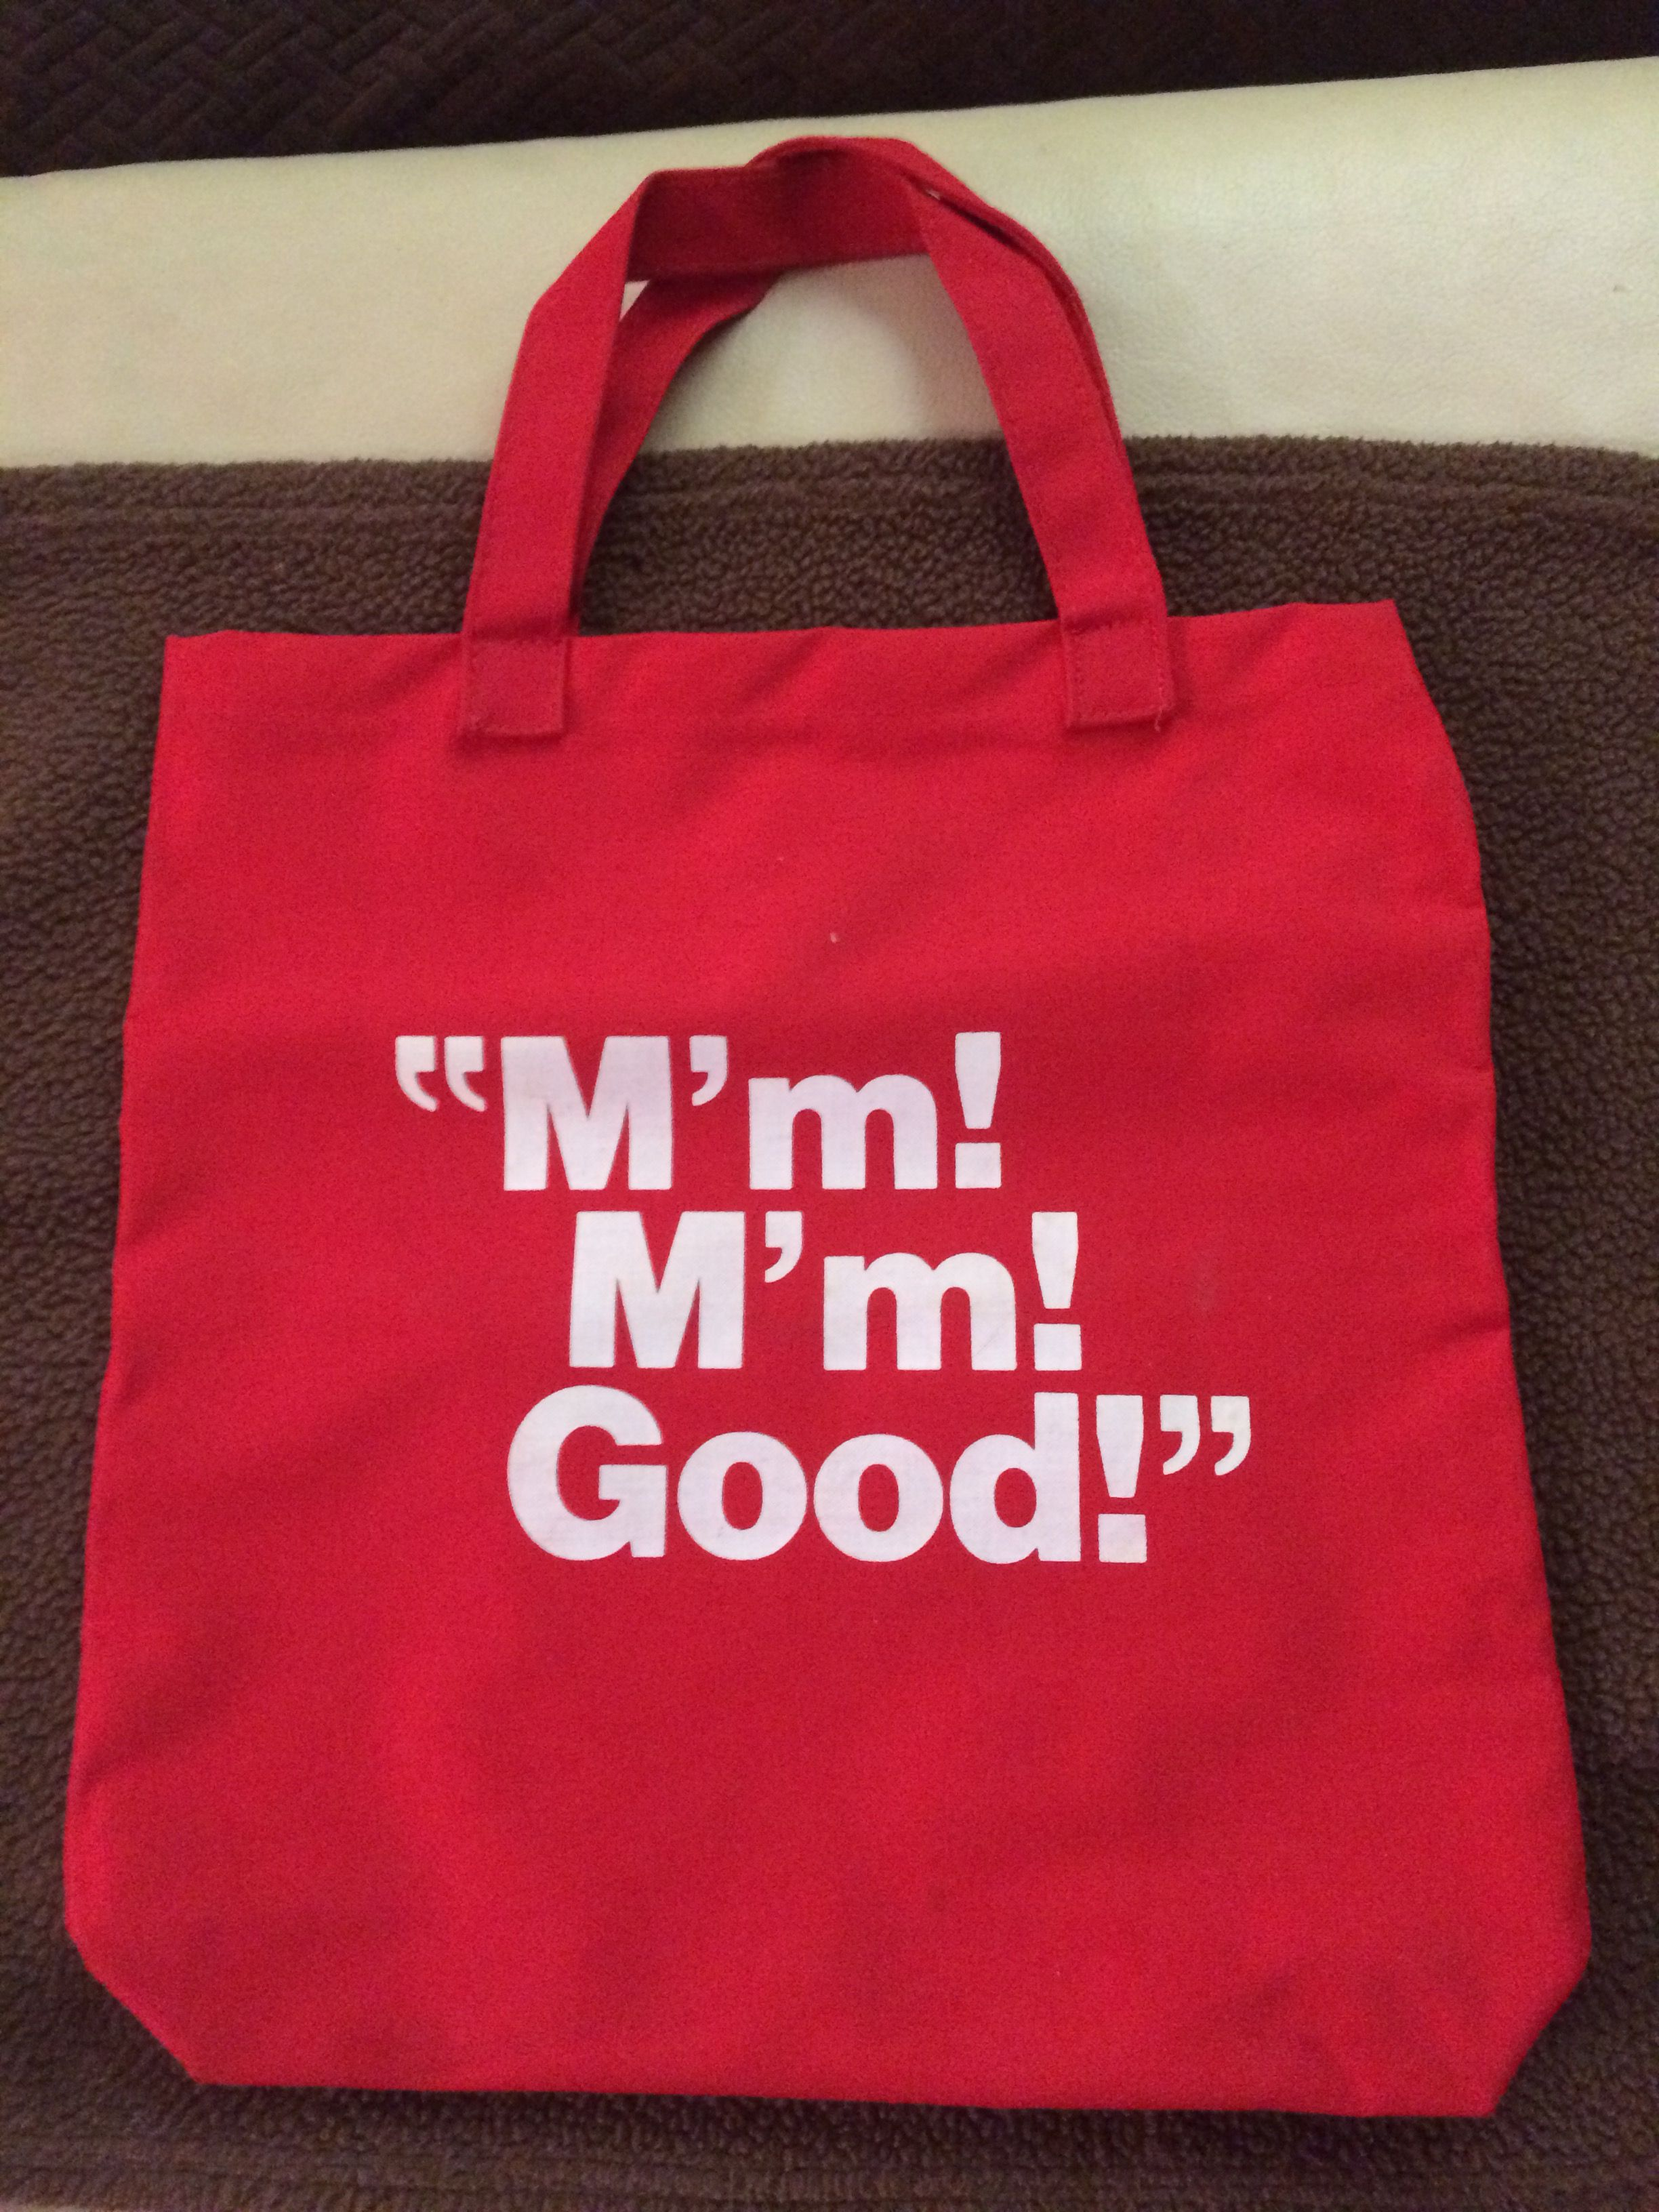 Pin By Audra Campbell On My Campbells Collection Campbells Kitchen Reusable Tote Bags Reusable Tote